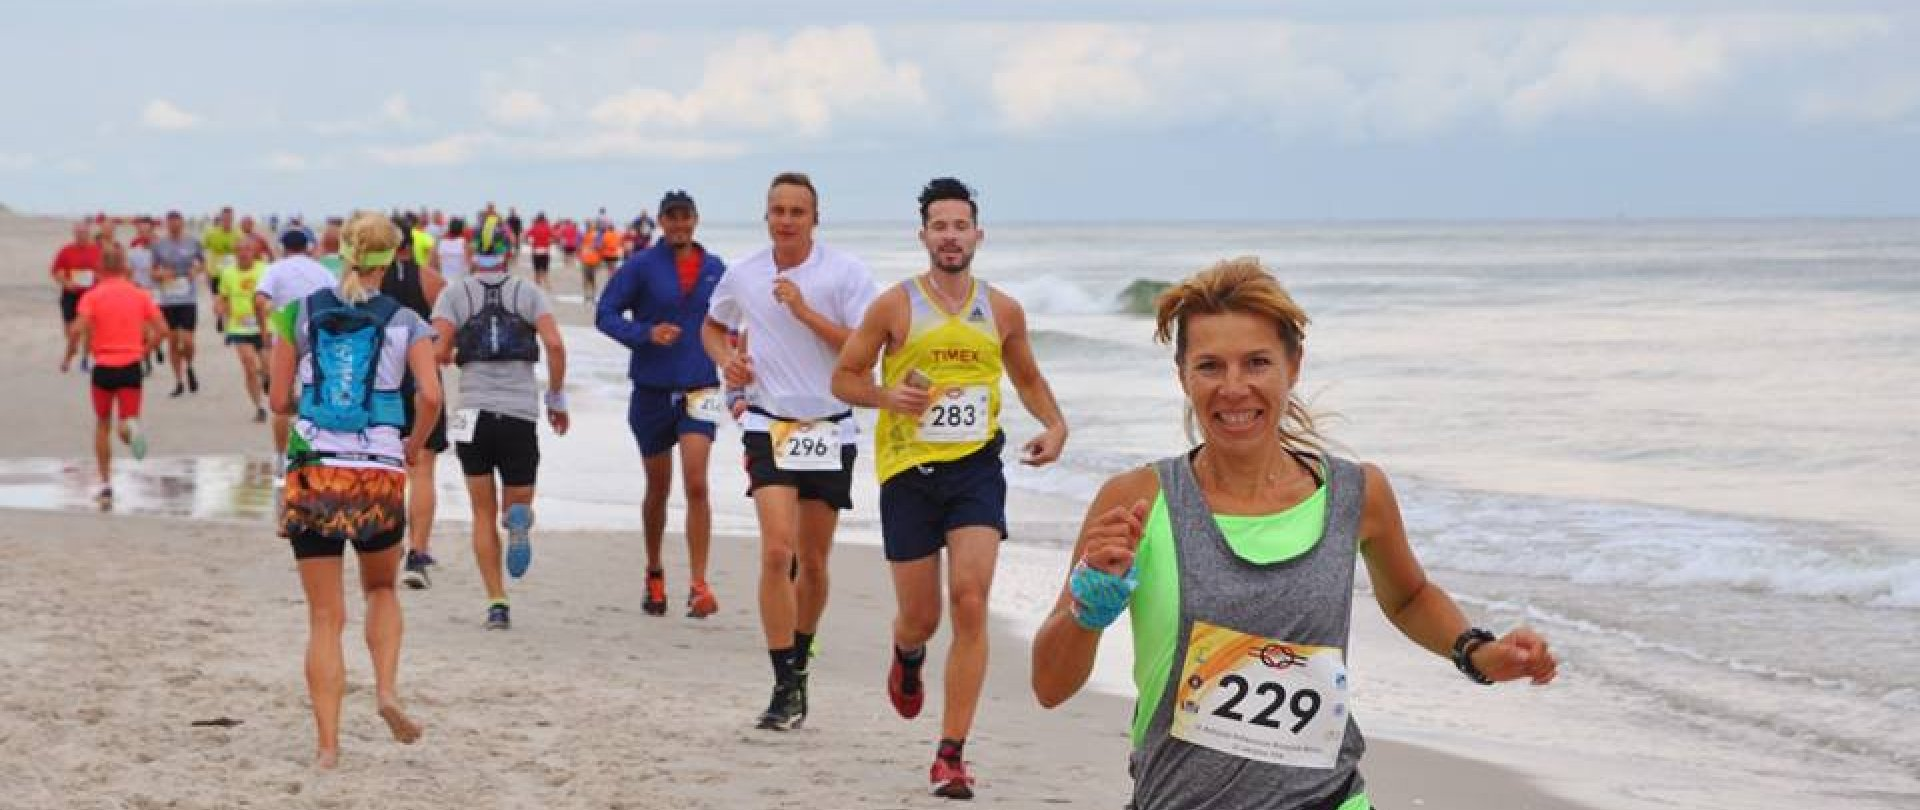 The Bryza Hotel was the main sponsor of the 9th Baltic Seaside Marathon